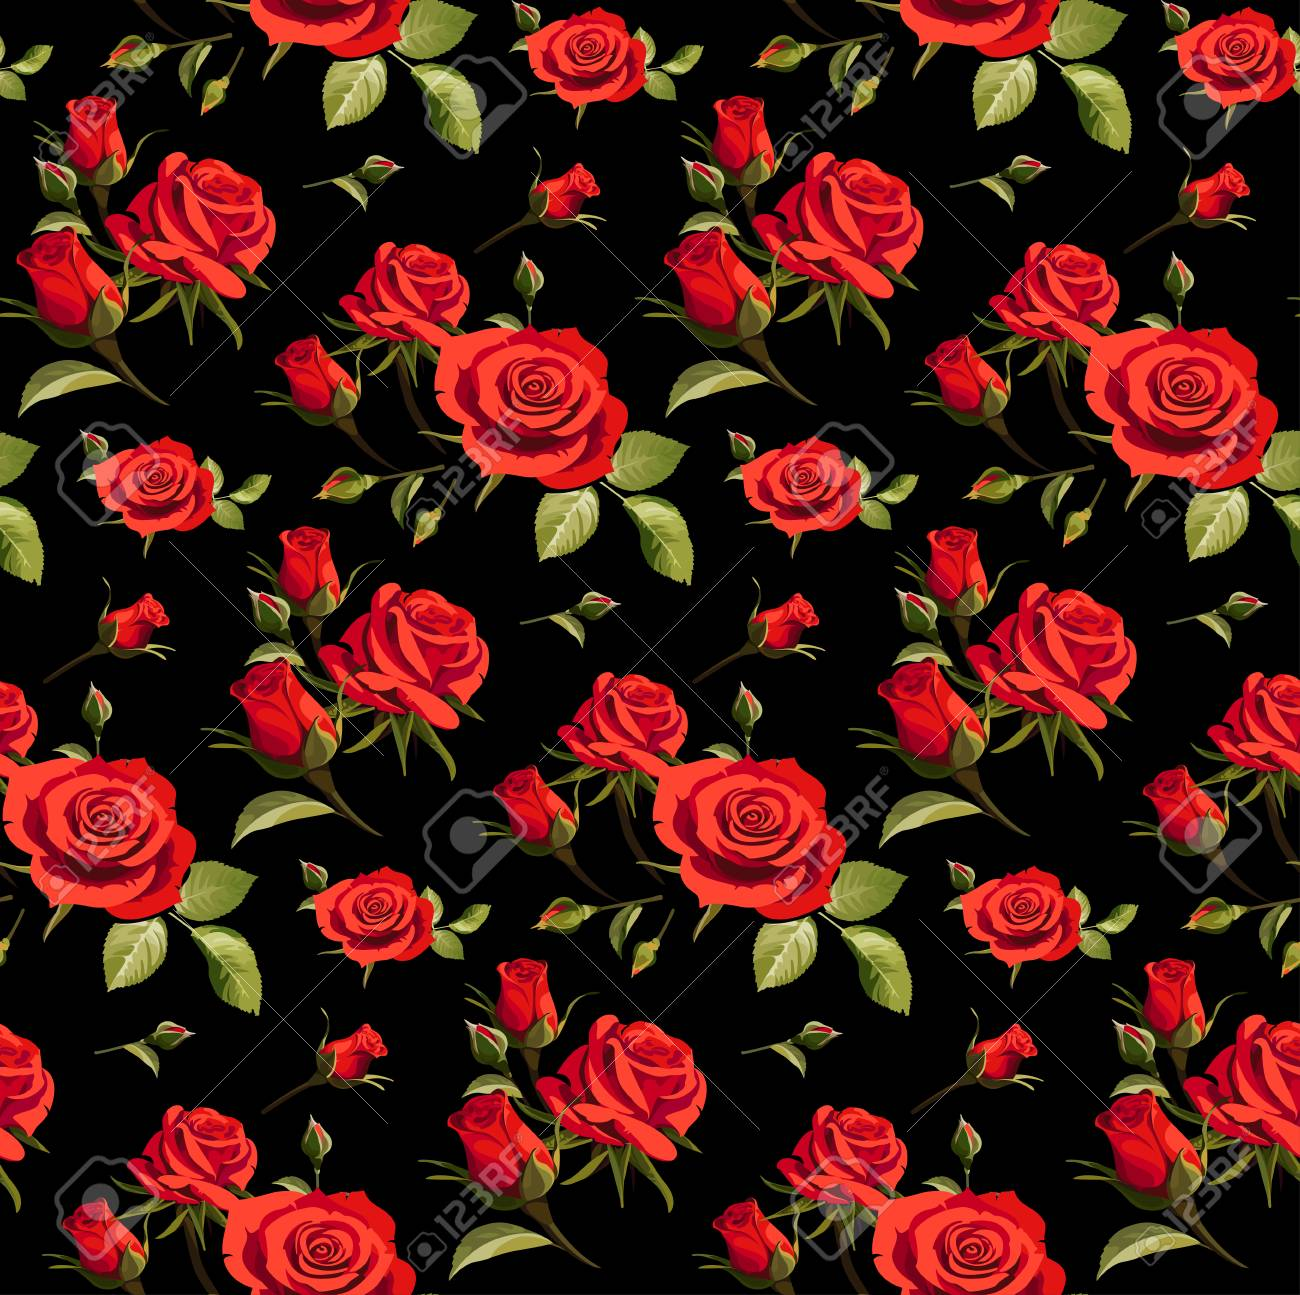 Seamless Floral Pattern With Red Roses On A Black Background